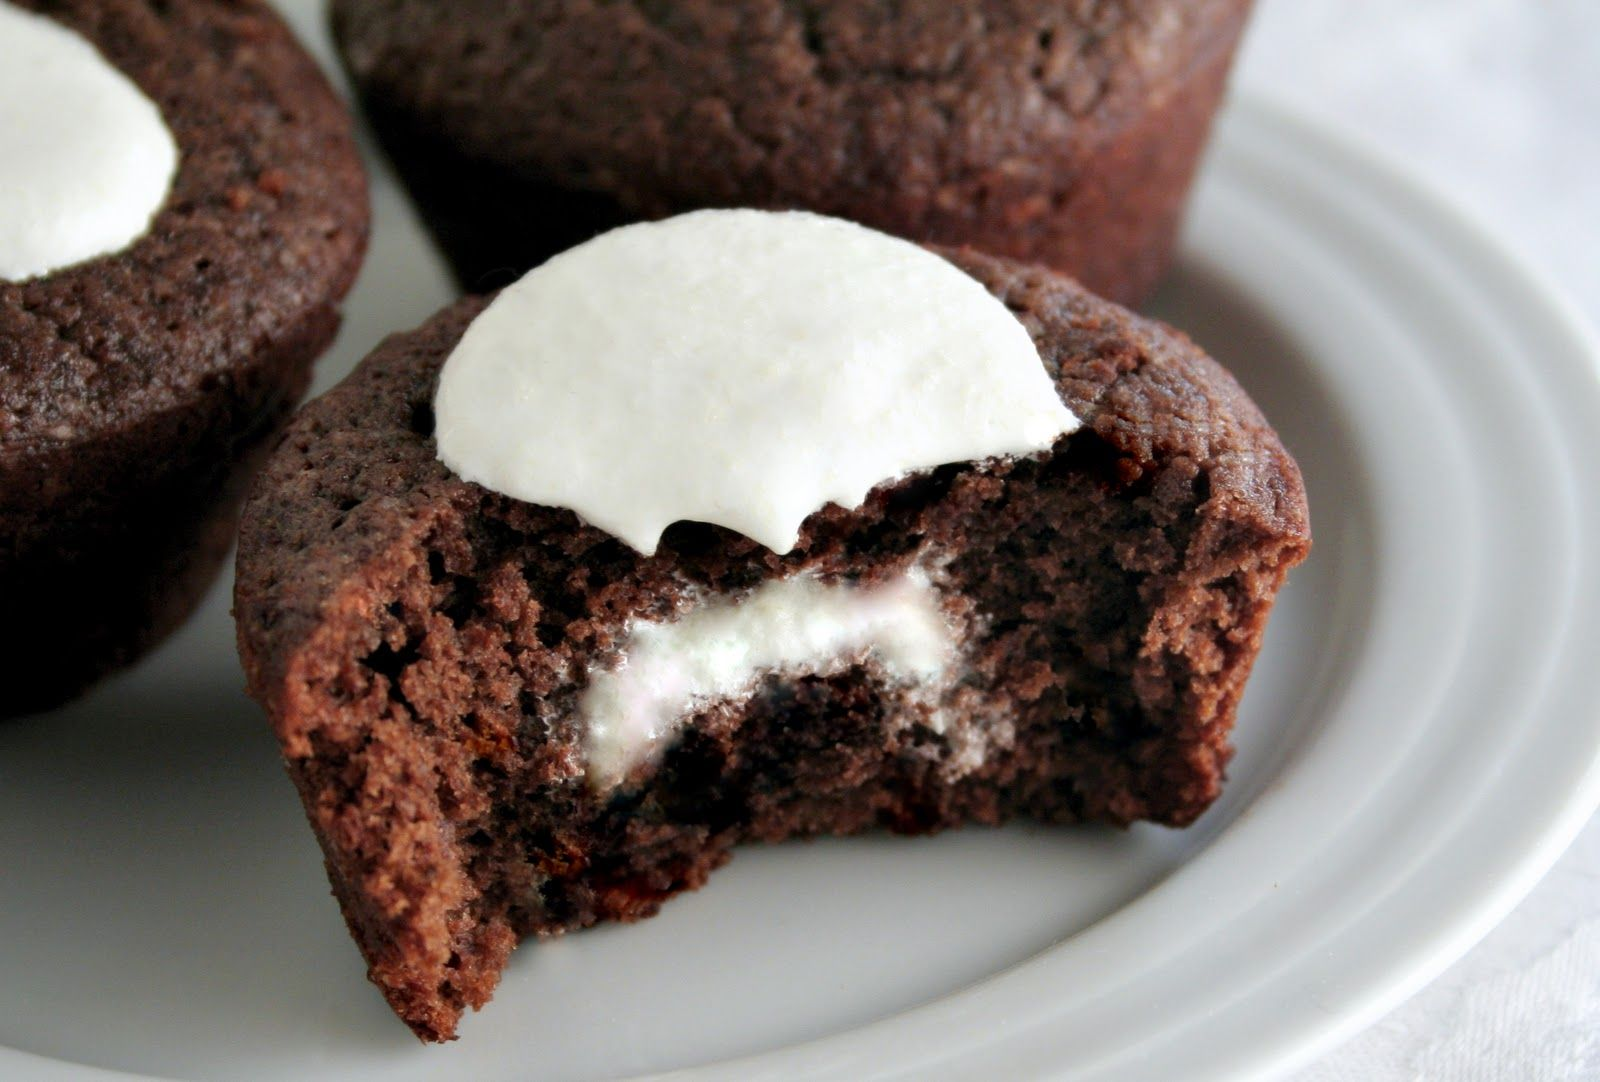 Chocolate cupcakes with marshmallow filling.